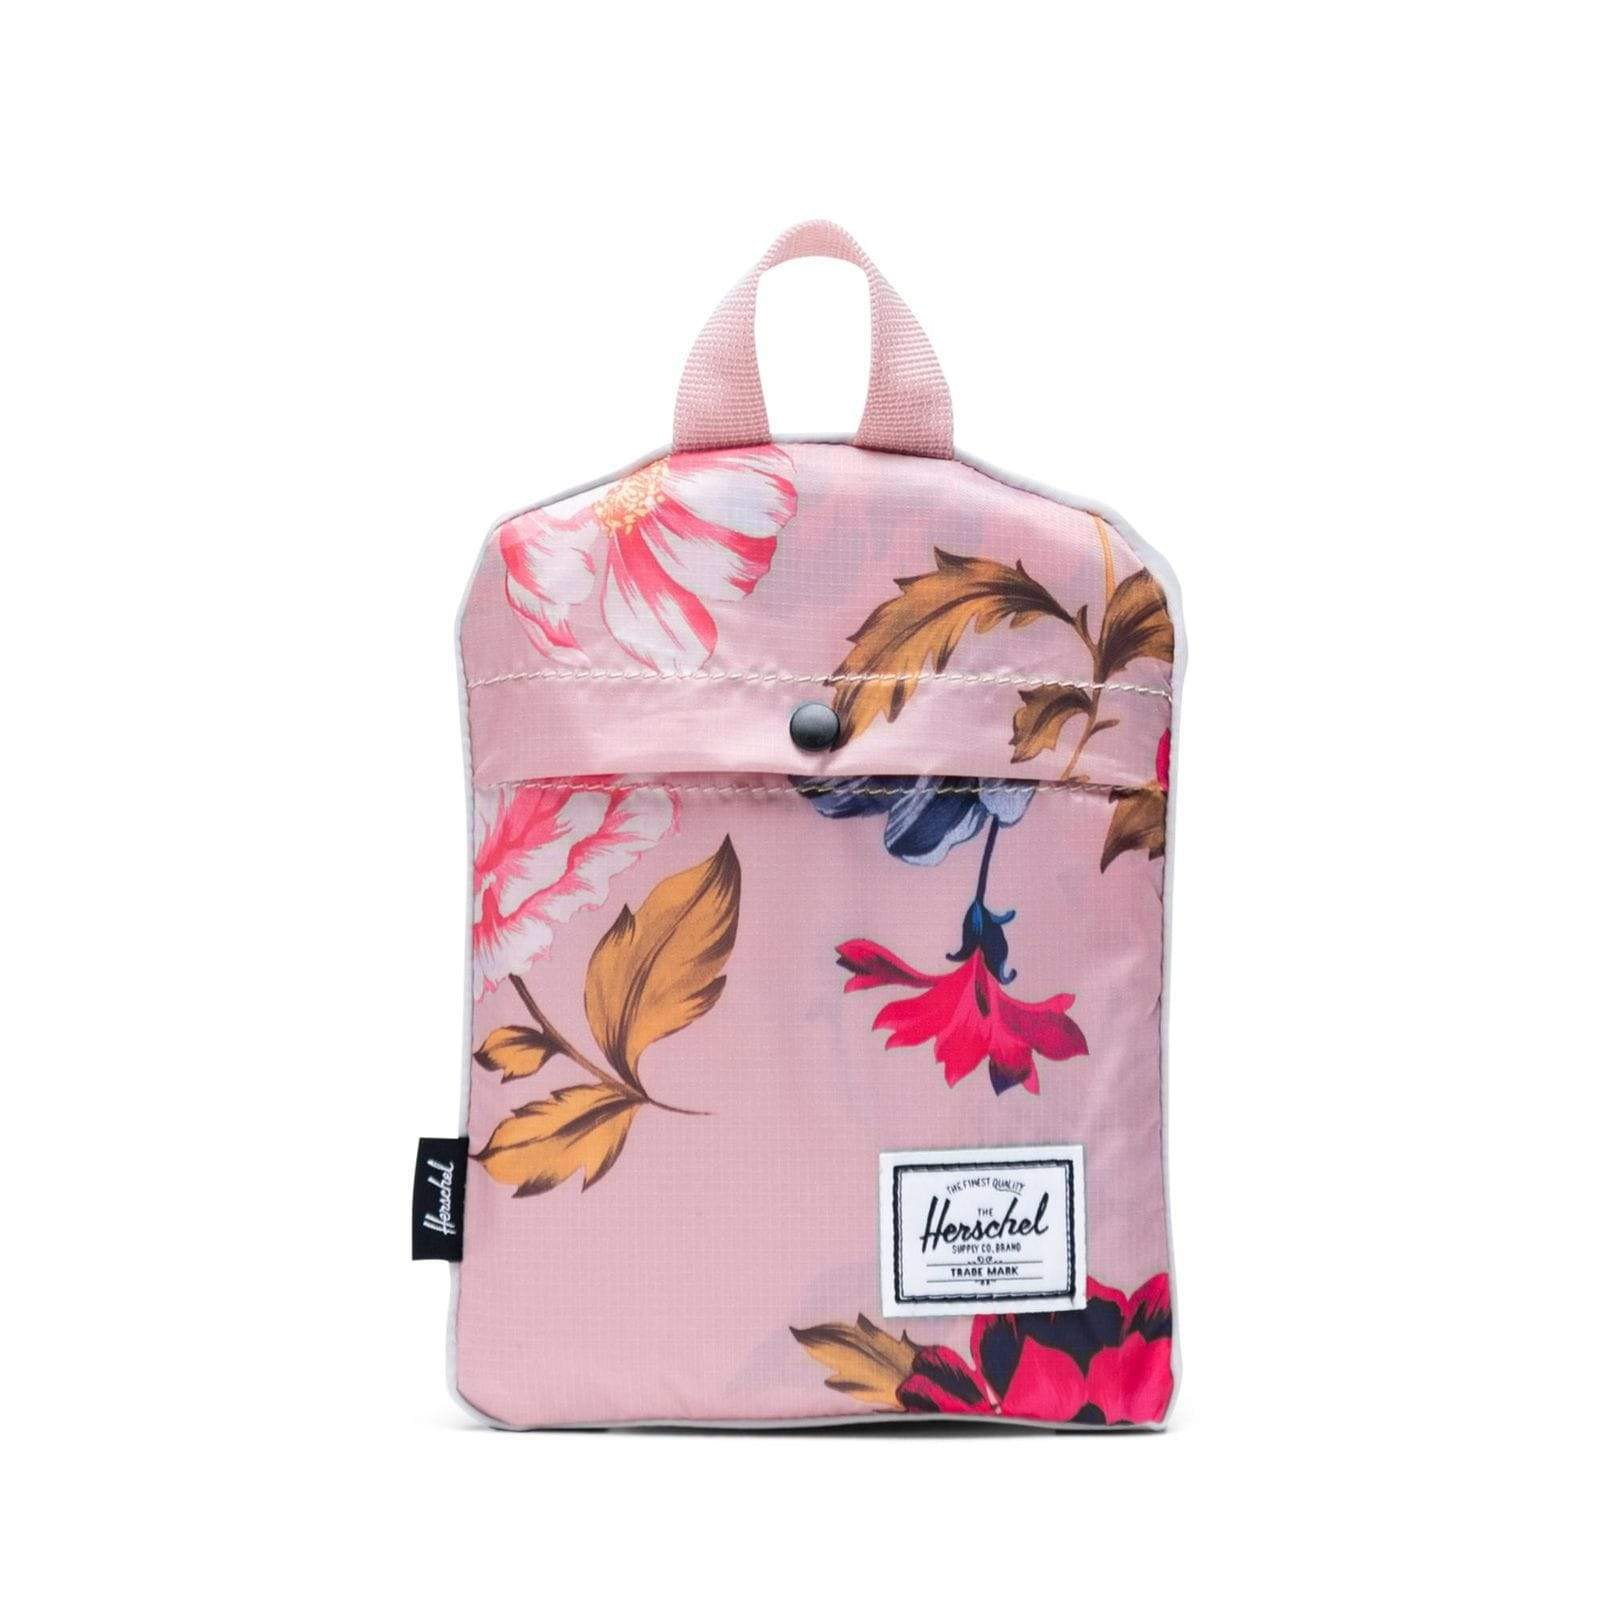 Herschel Packable Duffle Winter Floral duffle